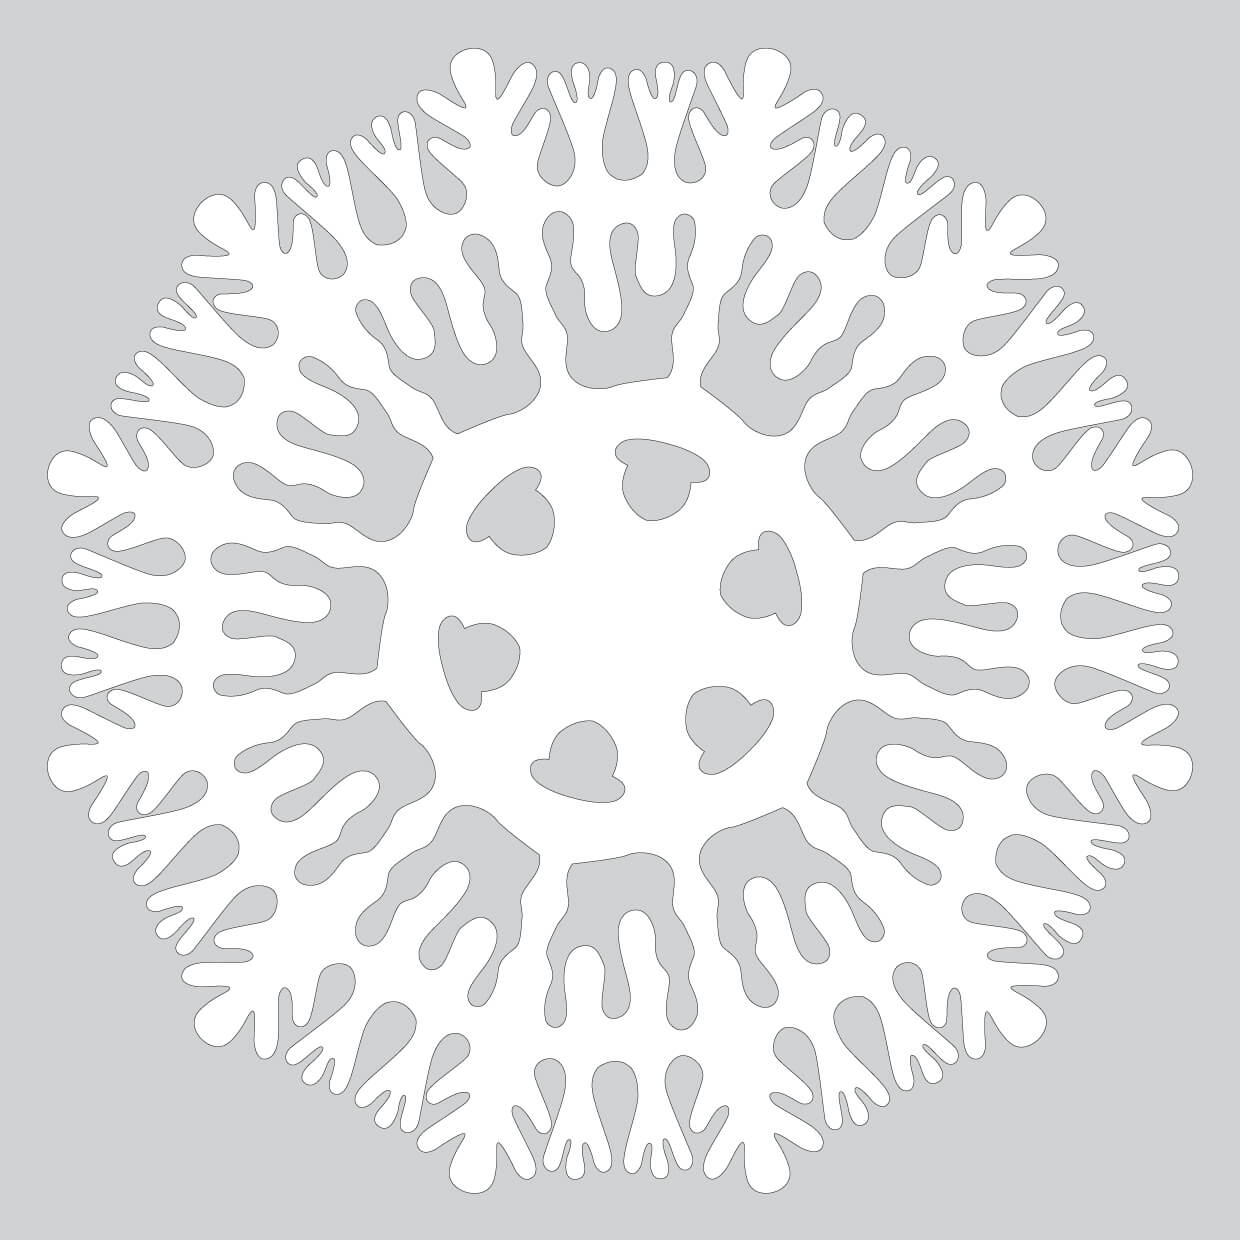 How To Make Liquid Paper Snowflake Pattern To Cut Out